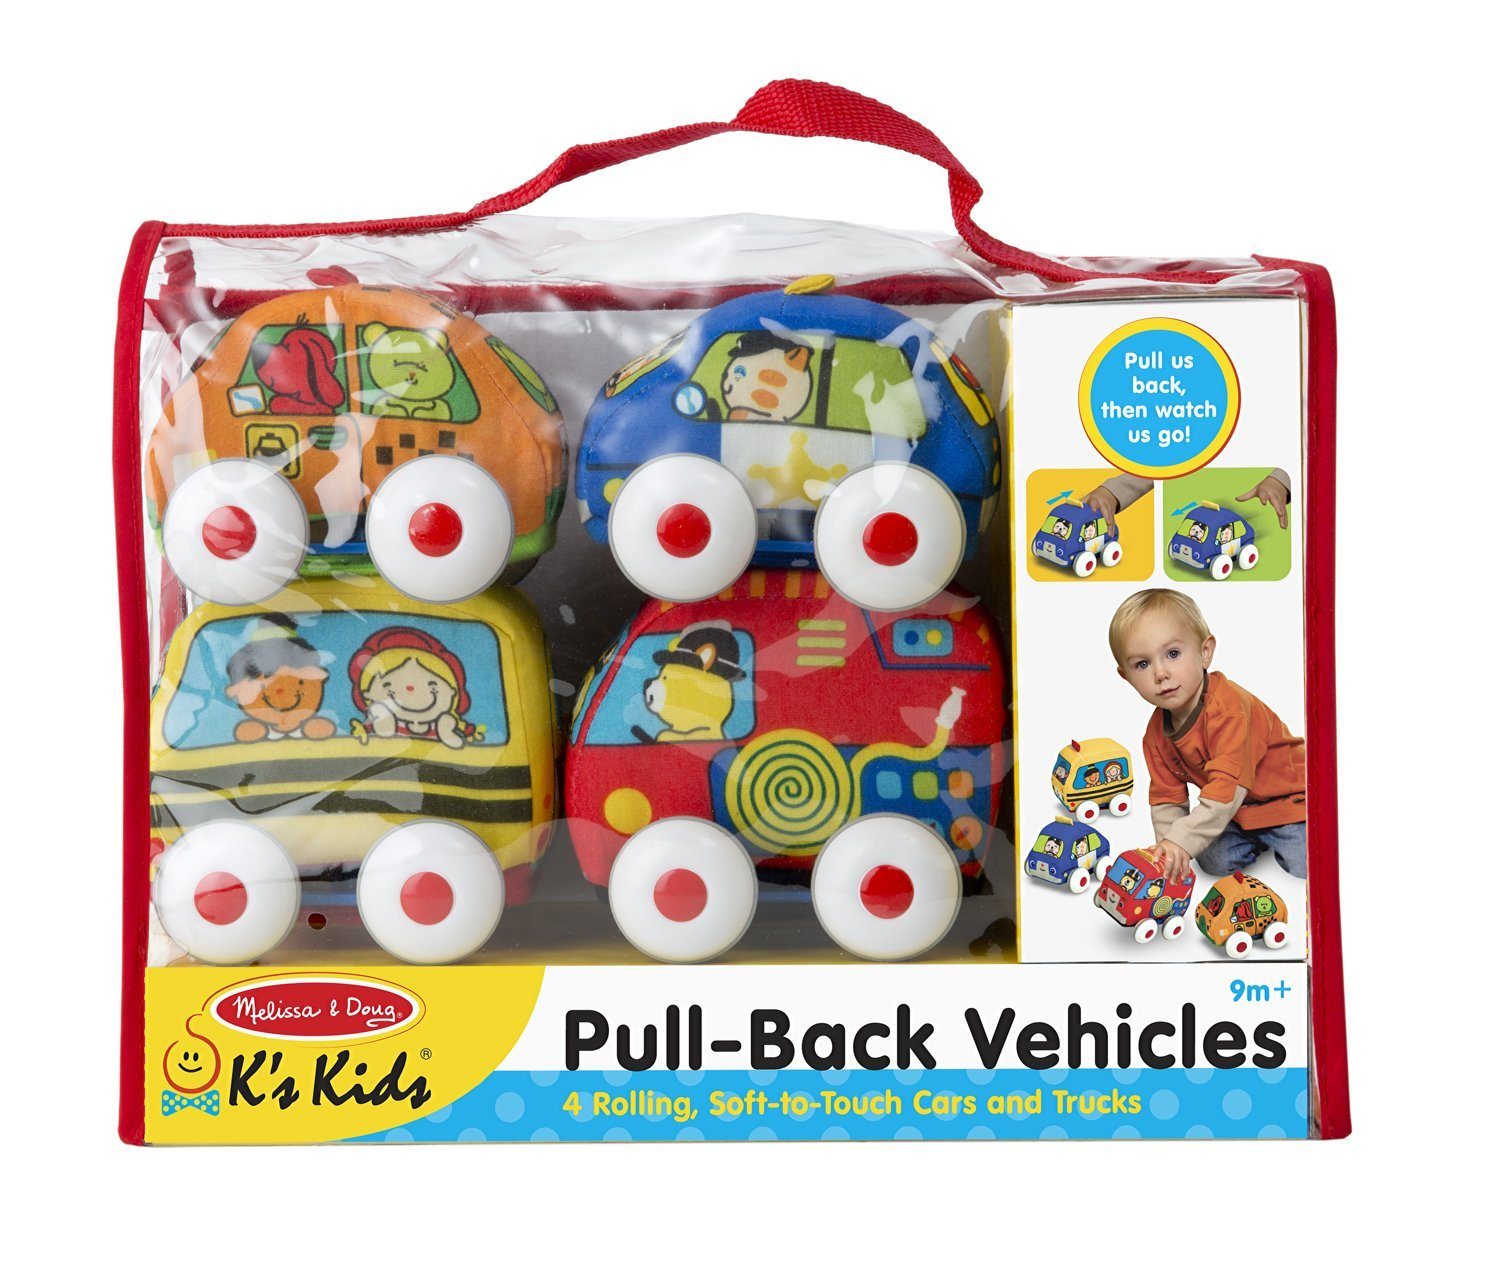 K's Kids Pull-Back Vehicle Set - Soft Baby Toy Set With 4 Cars and Trucks and Carrying Case